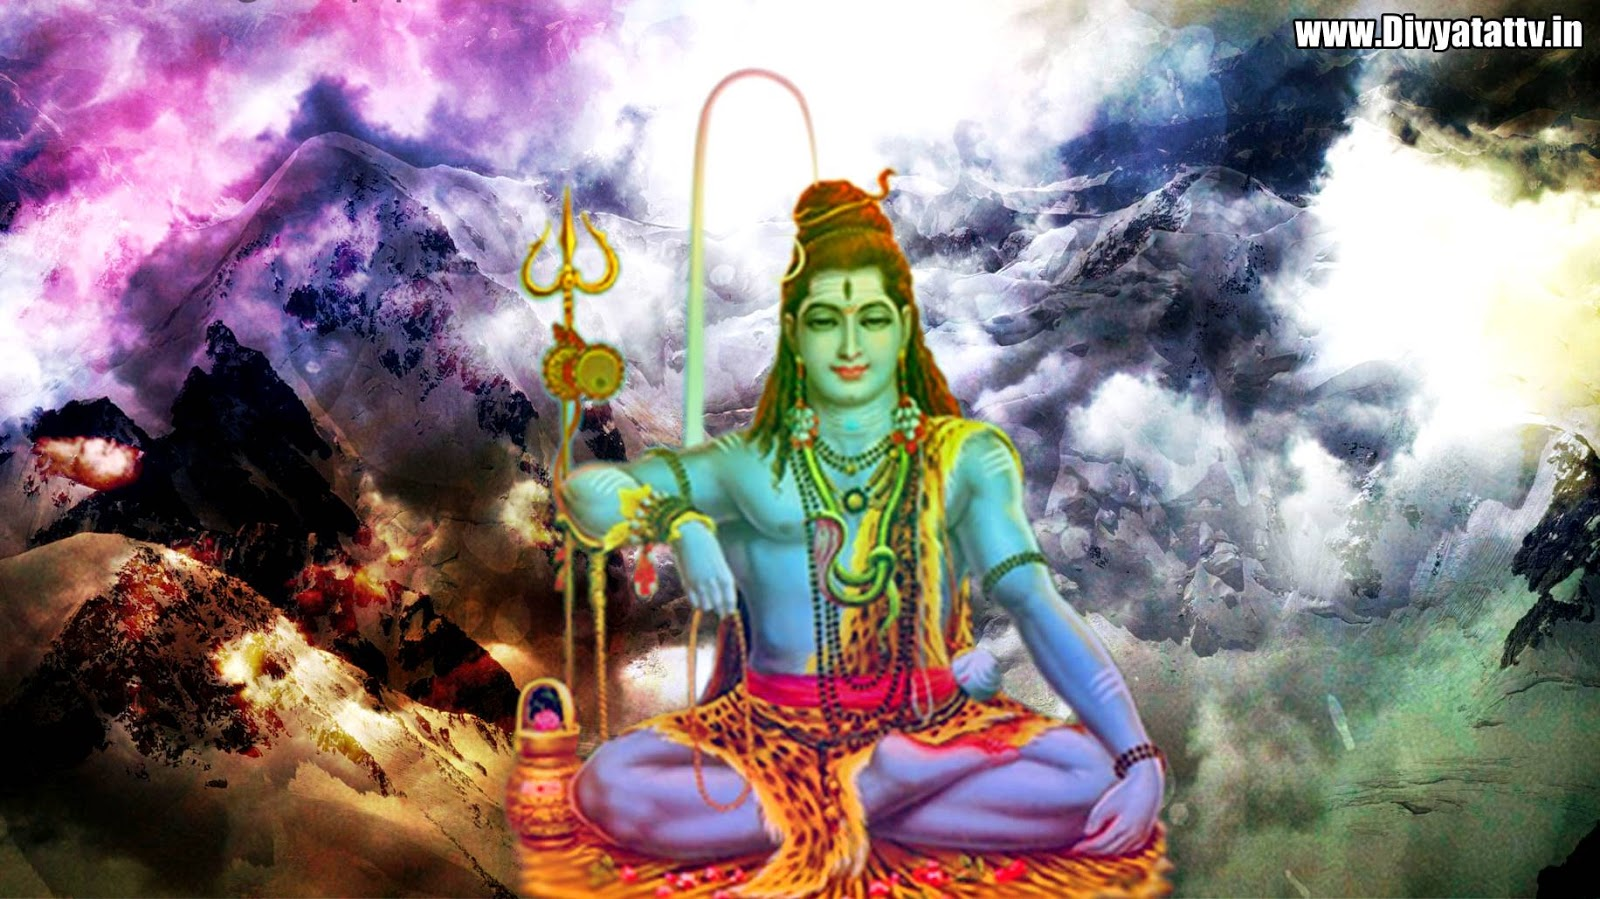 Fantastic Wallpaper Lord Shiv - shiva-god-wallpaper-lord-shiv-background-hindu-god-india-divyatattva  HD_239642.jpg